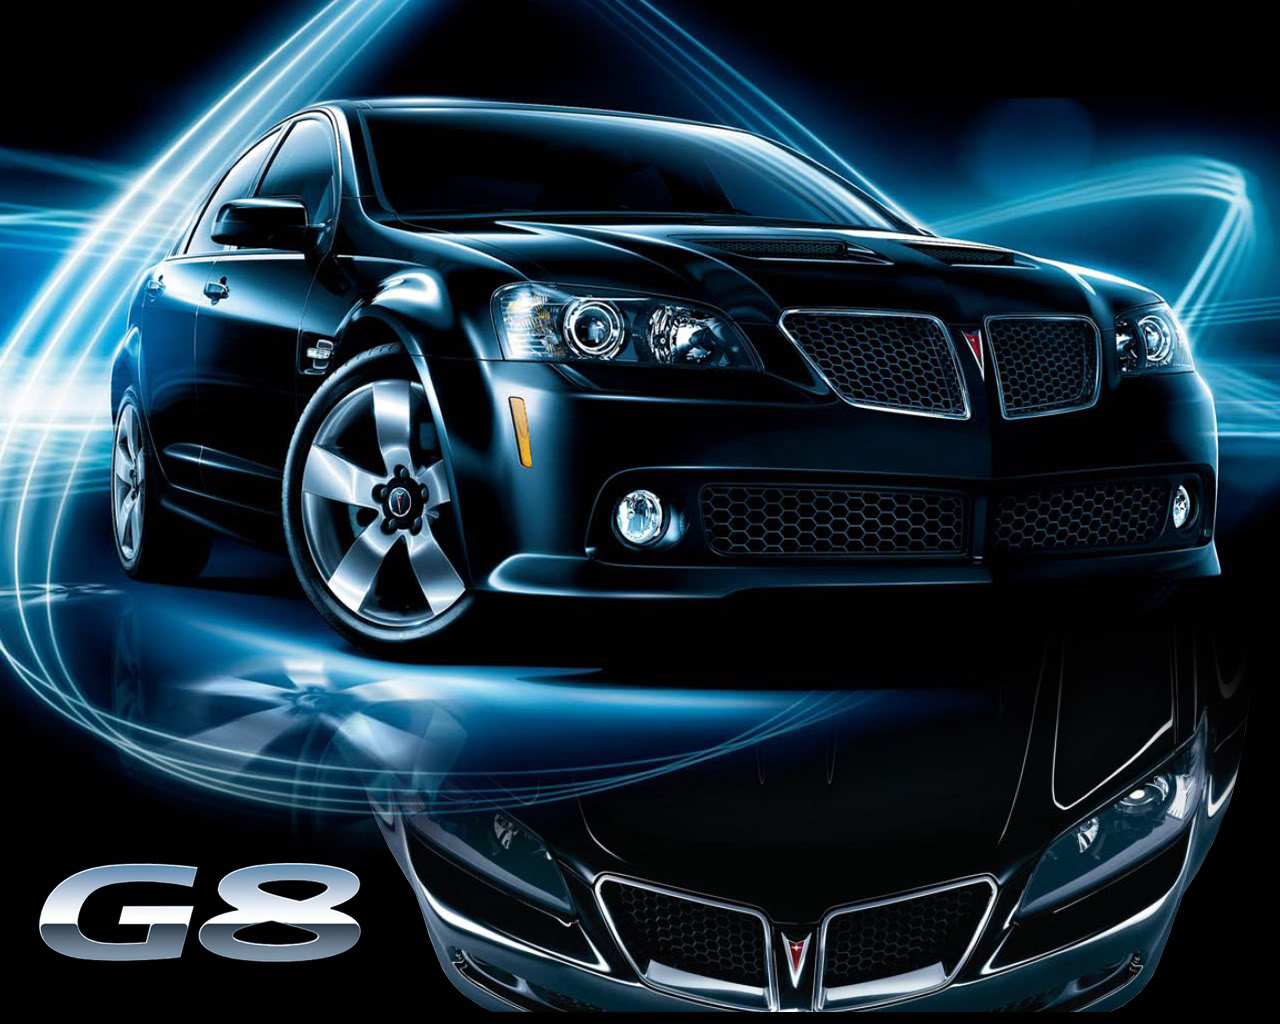 Pontiac G8 Wallpaper - WallpaperSafari